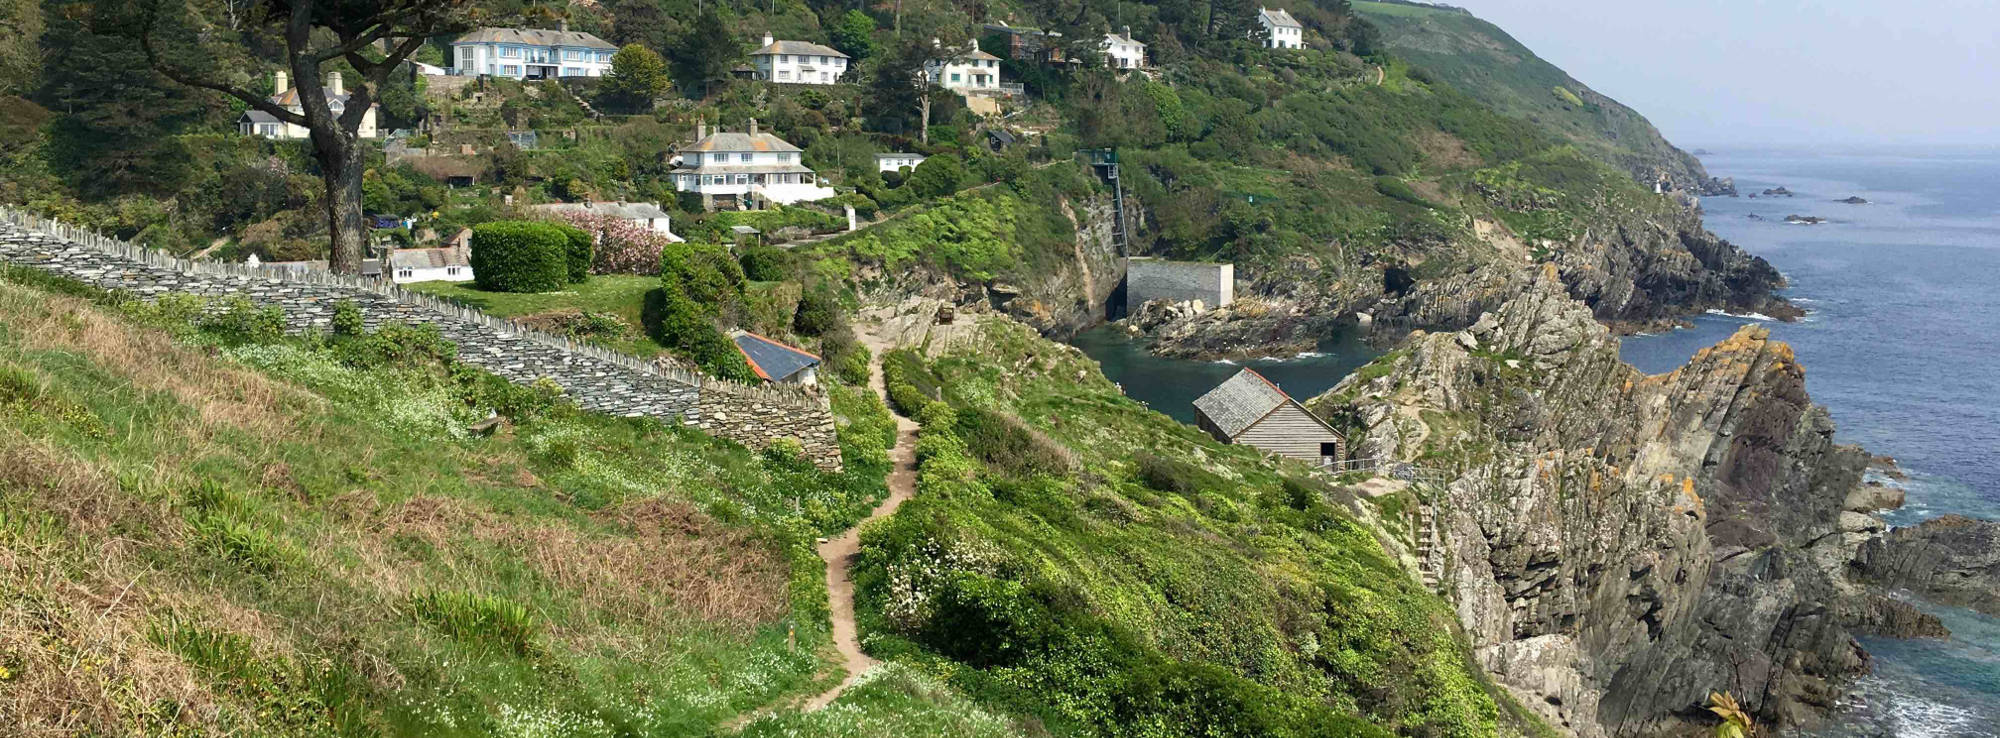 Walking coastal path into Polperro Cornwall